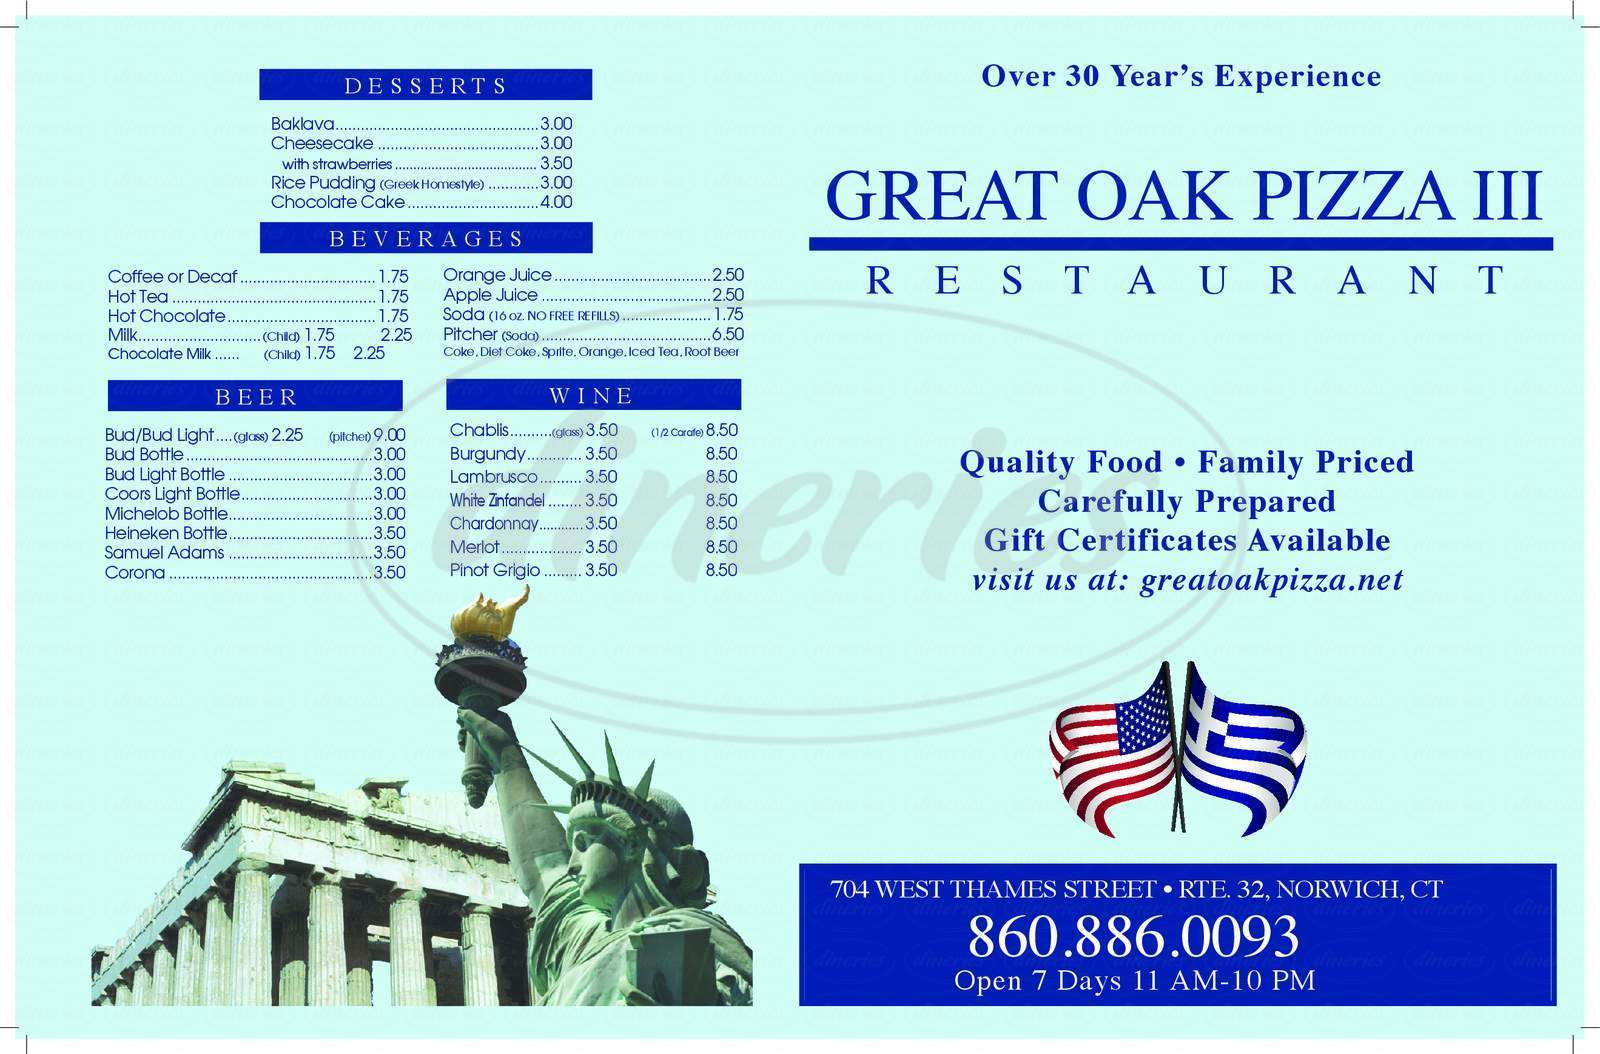 menu for Great Oak Pizza Restaurant III